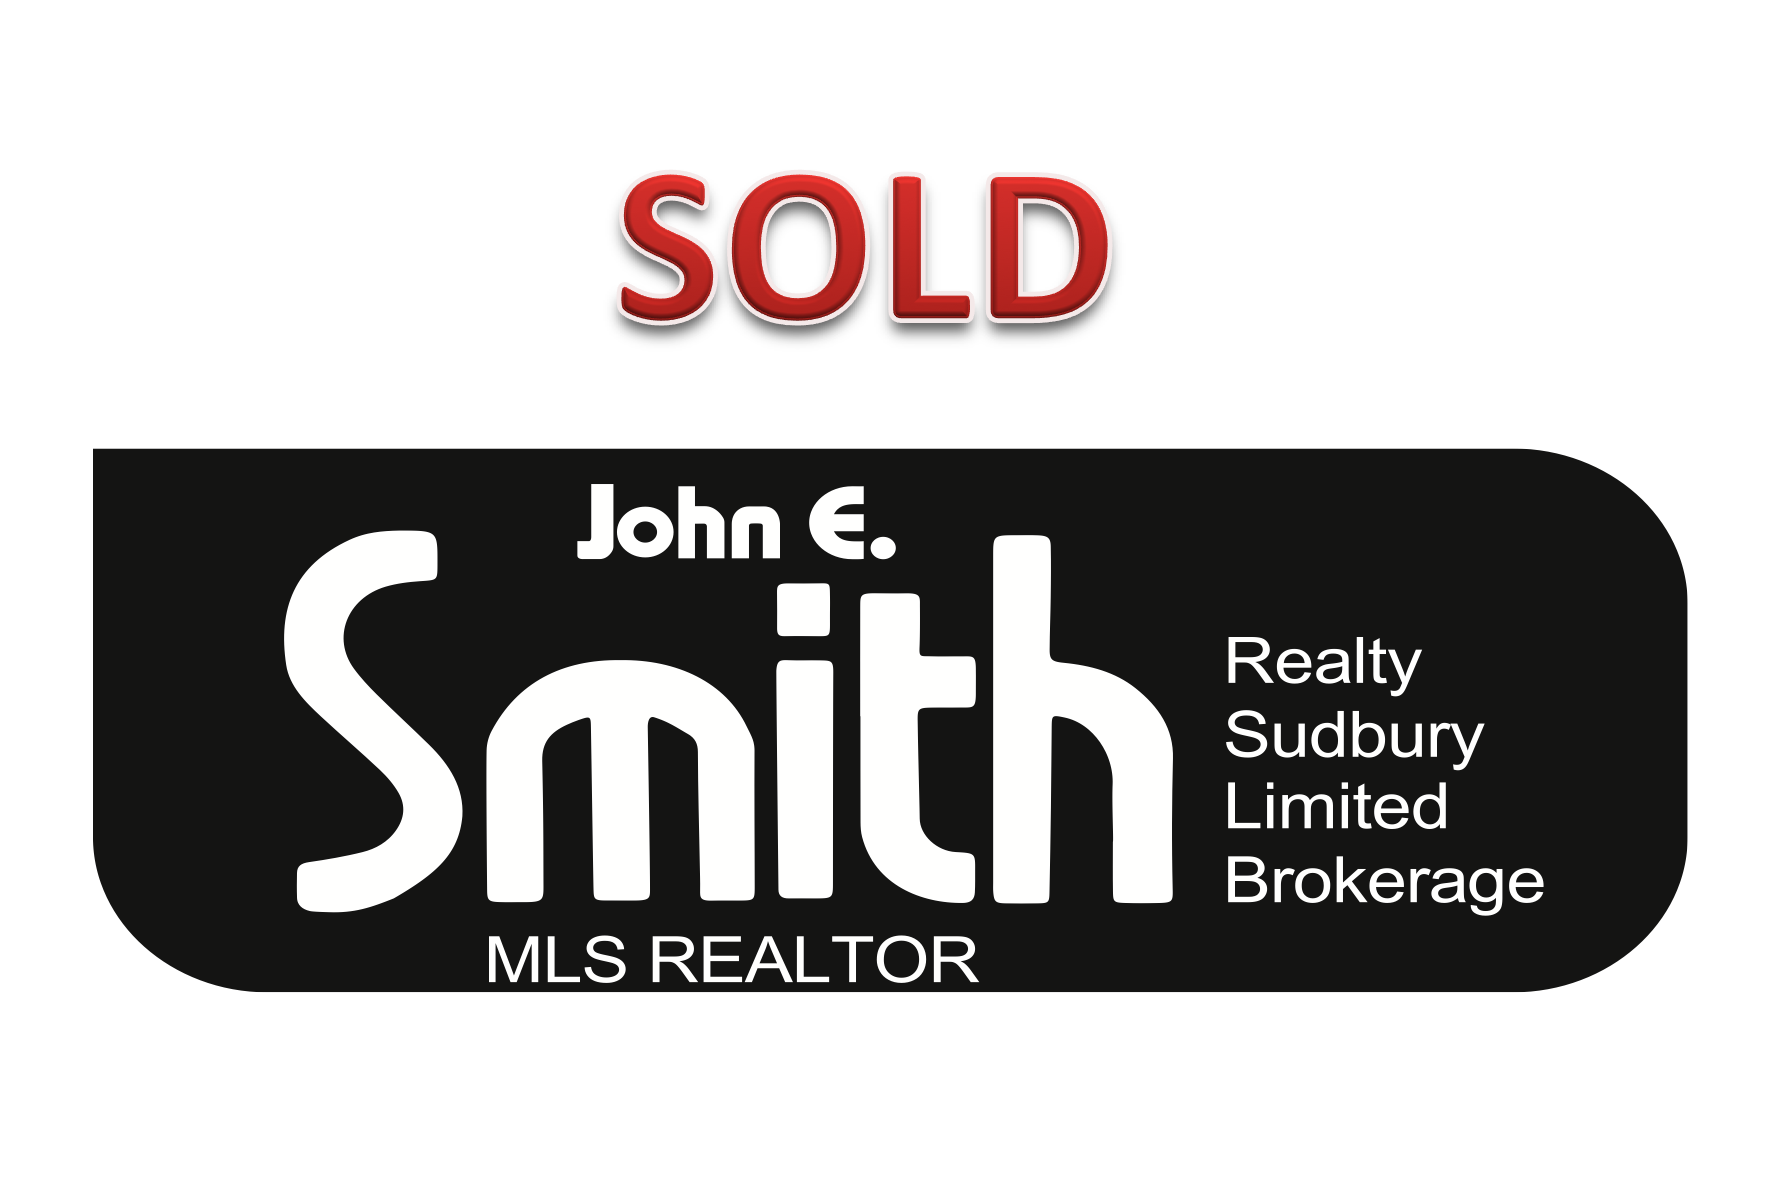 John E. Smith Realty Sudbury Limited, Brokerage